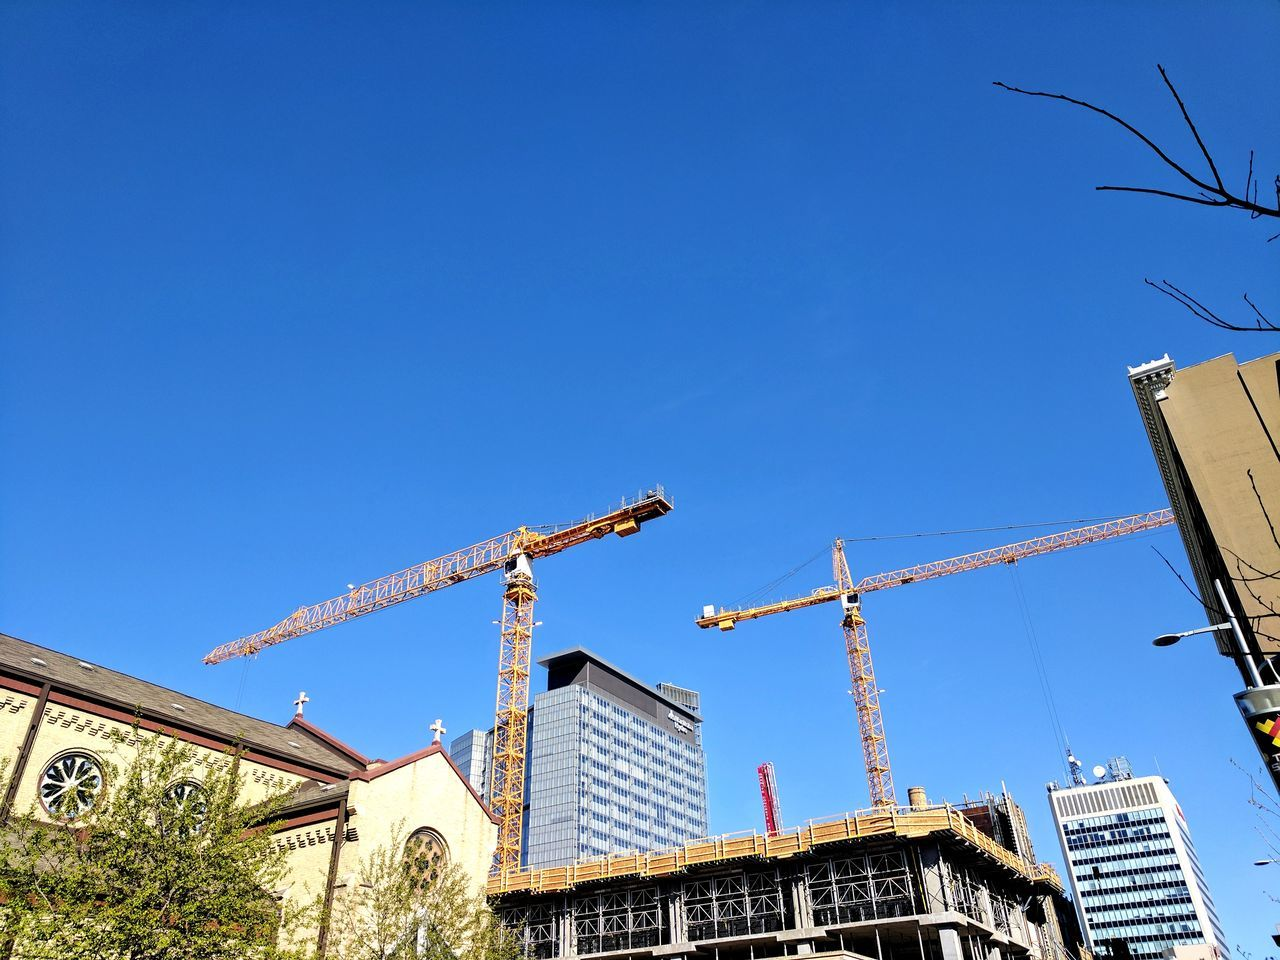 Blue Architecture Arts Culture And Entertainment Low Angle View Built Structure Sky Clear Sky Day Outdoors Building Exterior No People Construction Construction Site Construction Machinery Construction Crane Google Pixel XL